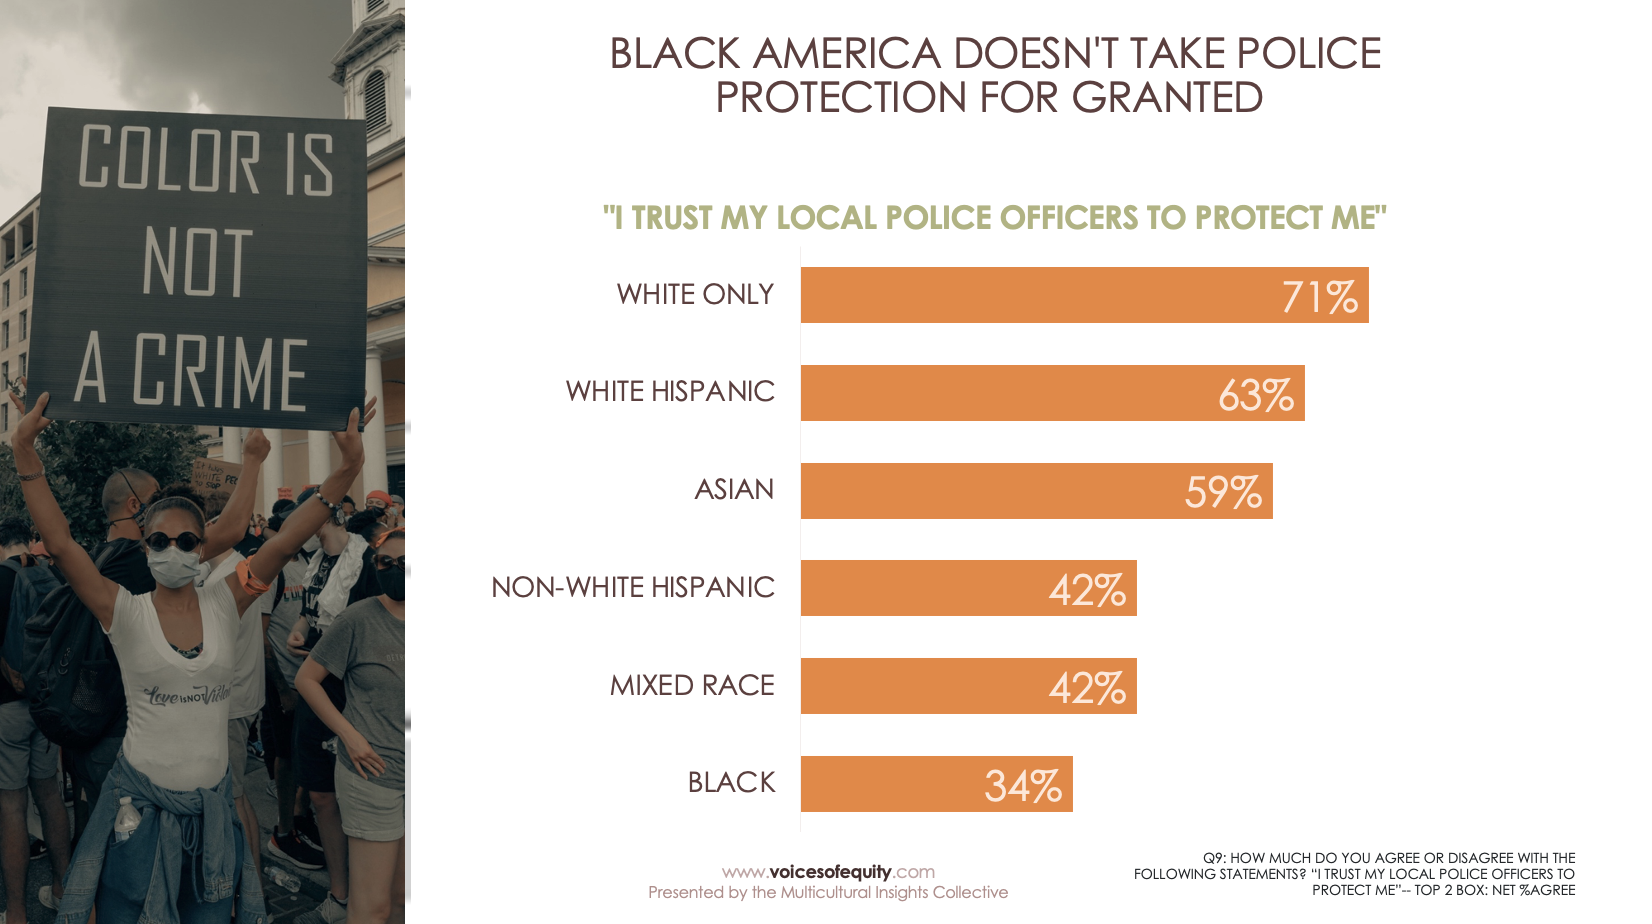 I trust my local police to protect me breakdown by race